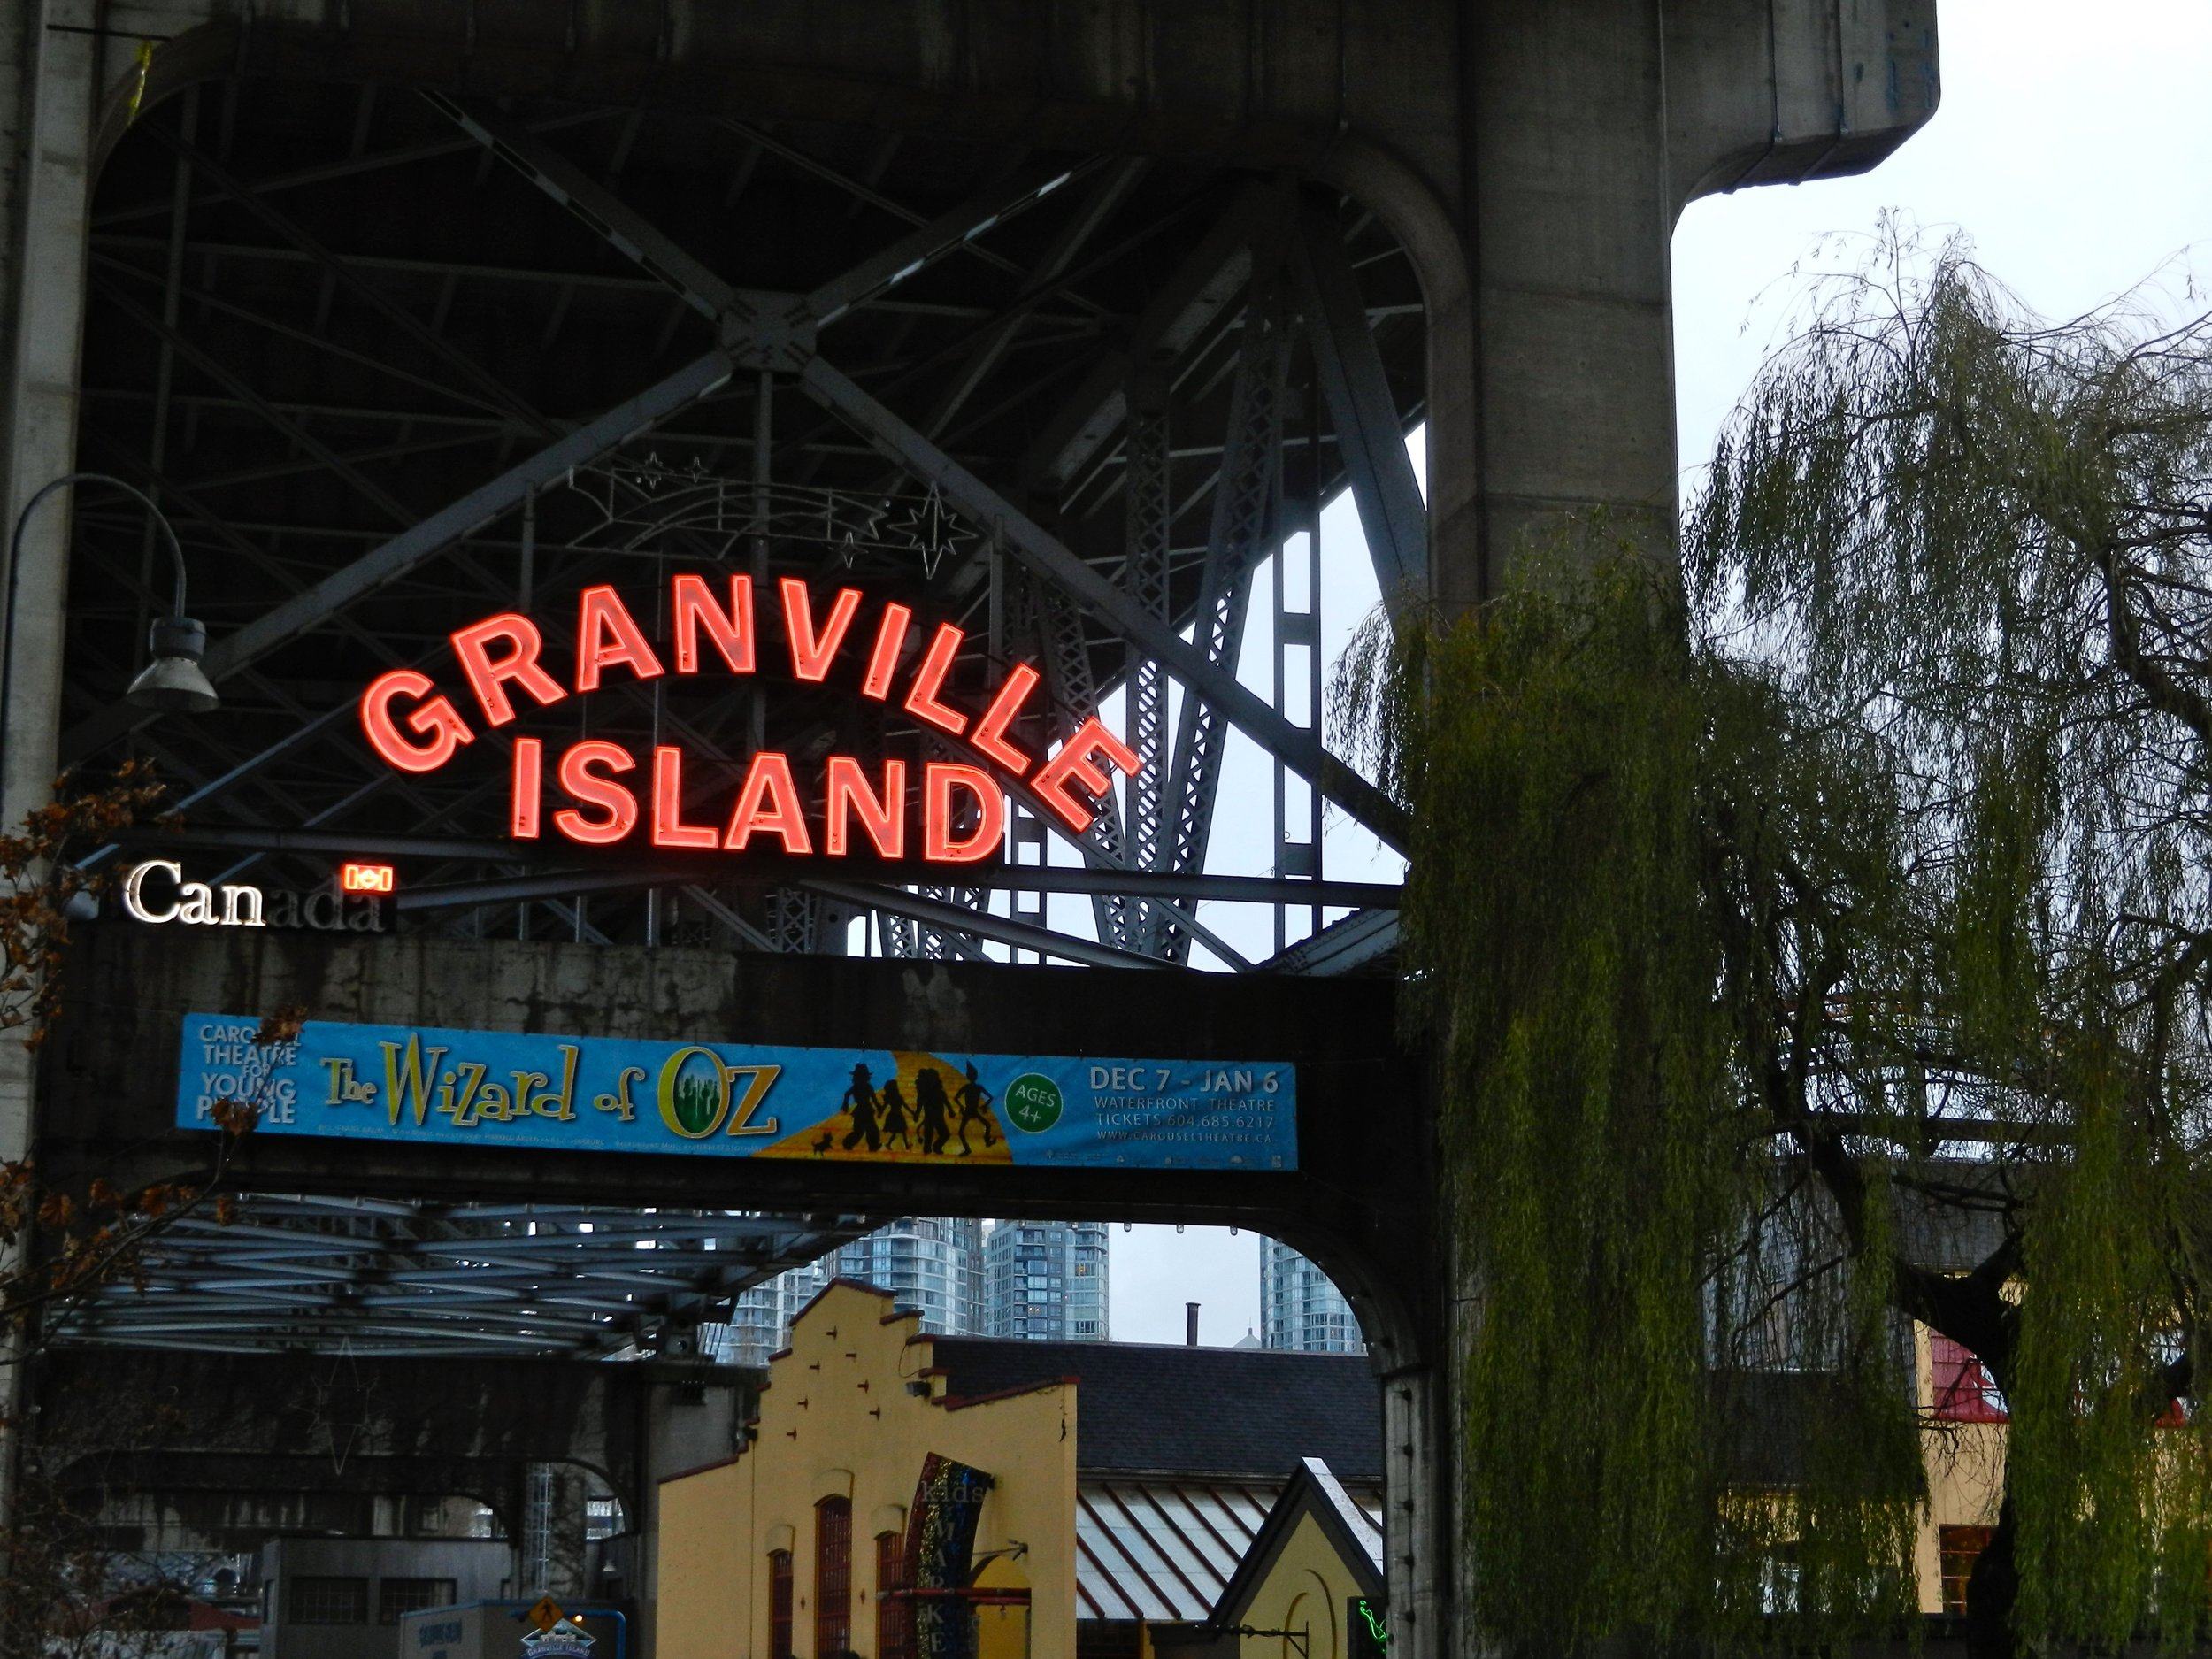 Granville Island awaits. Bring an empty stomach!